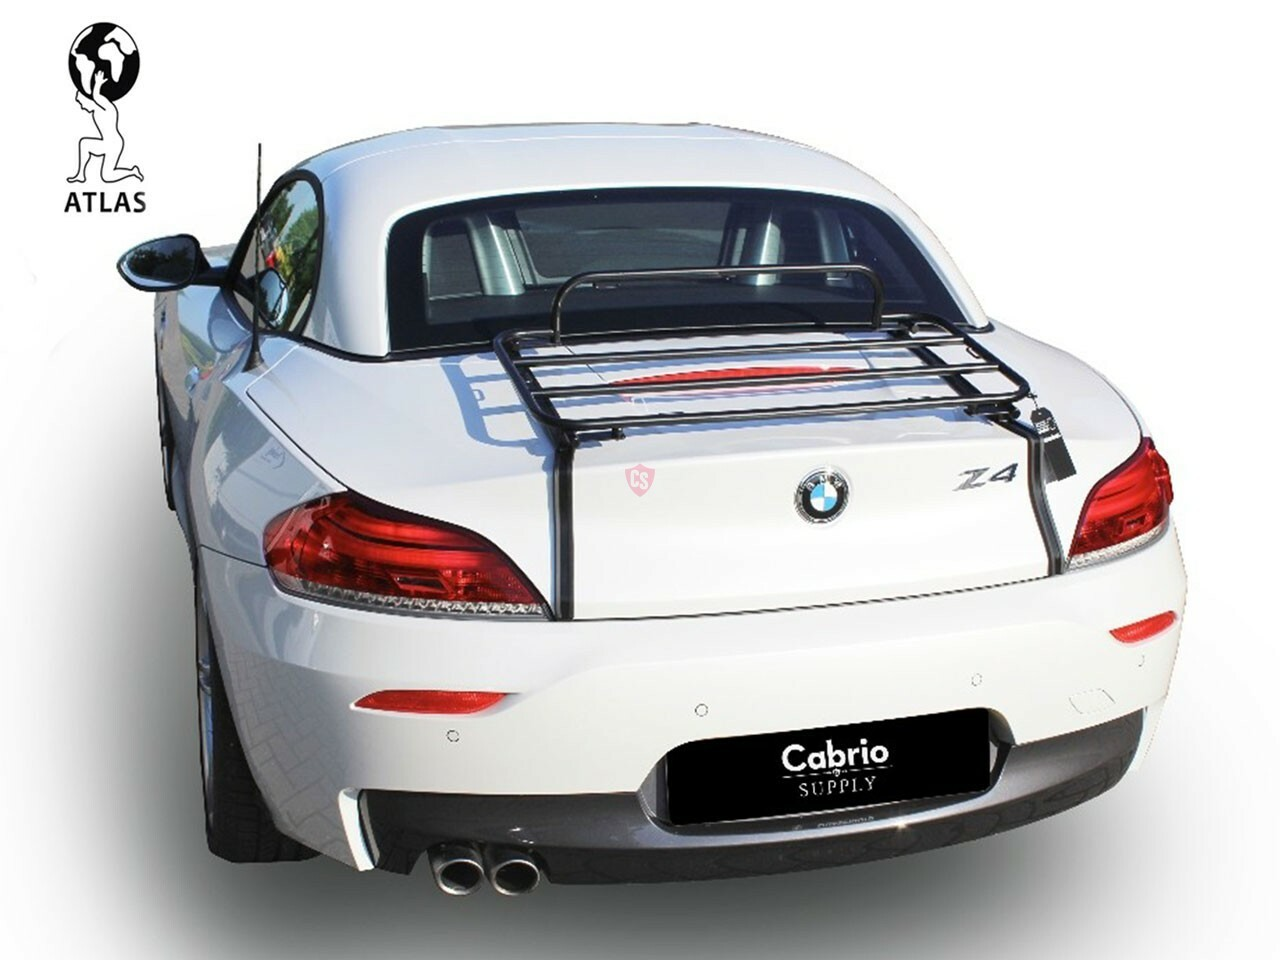 Bmw Z4 E89 Roadster Luggage Rack Black Edition 2009 Present Cabrio Supply